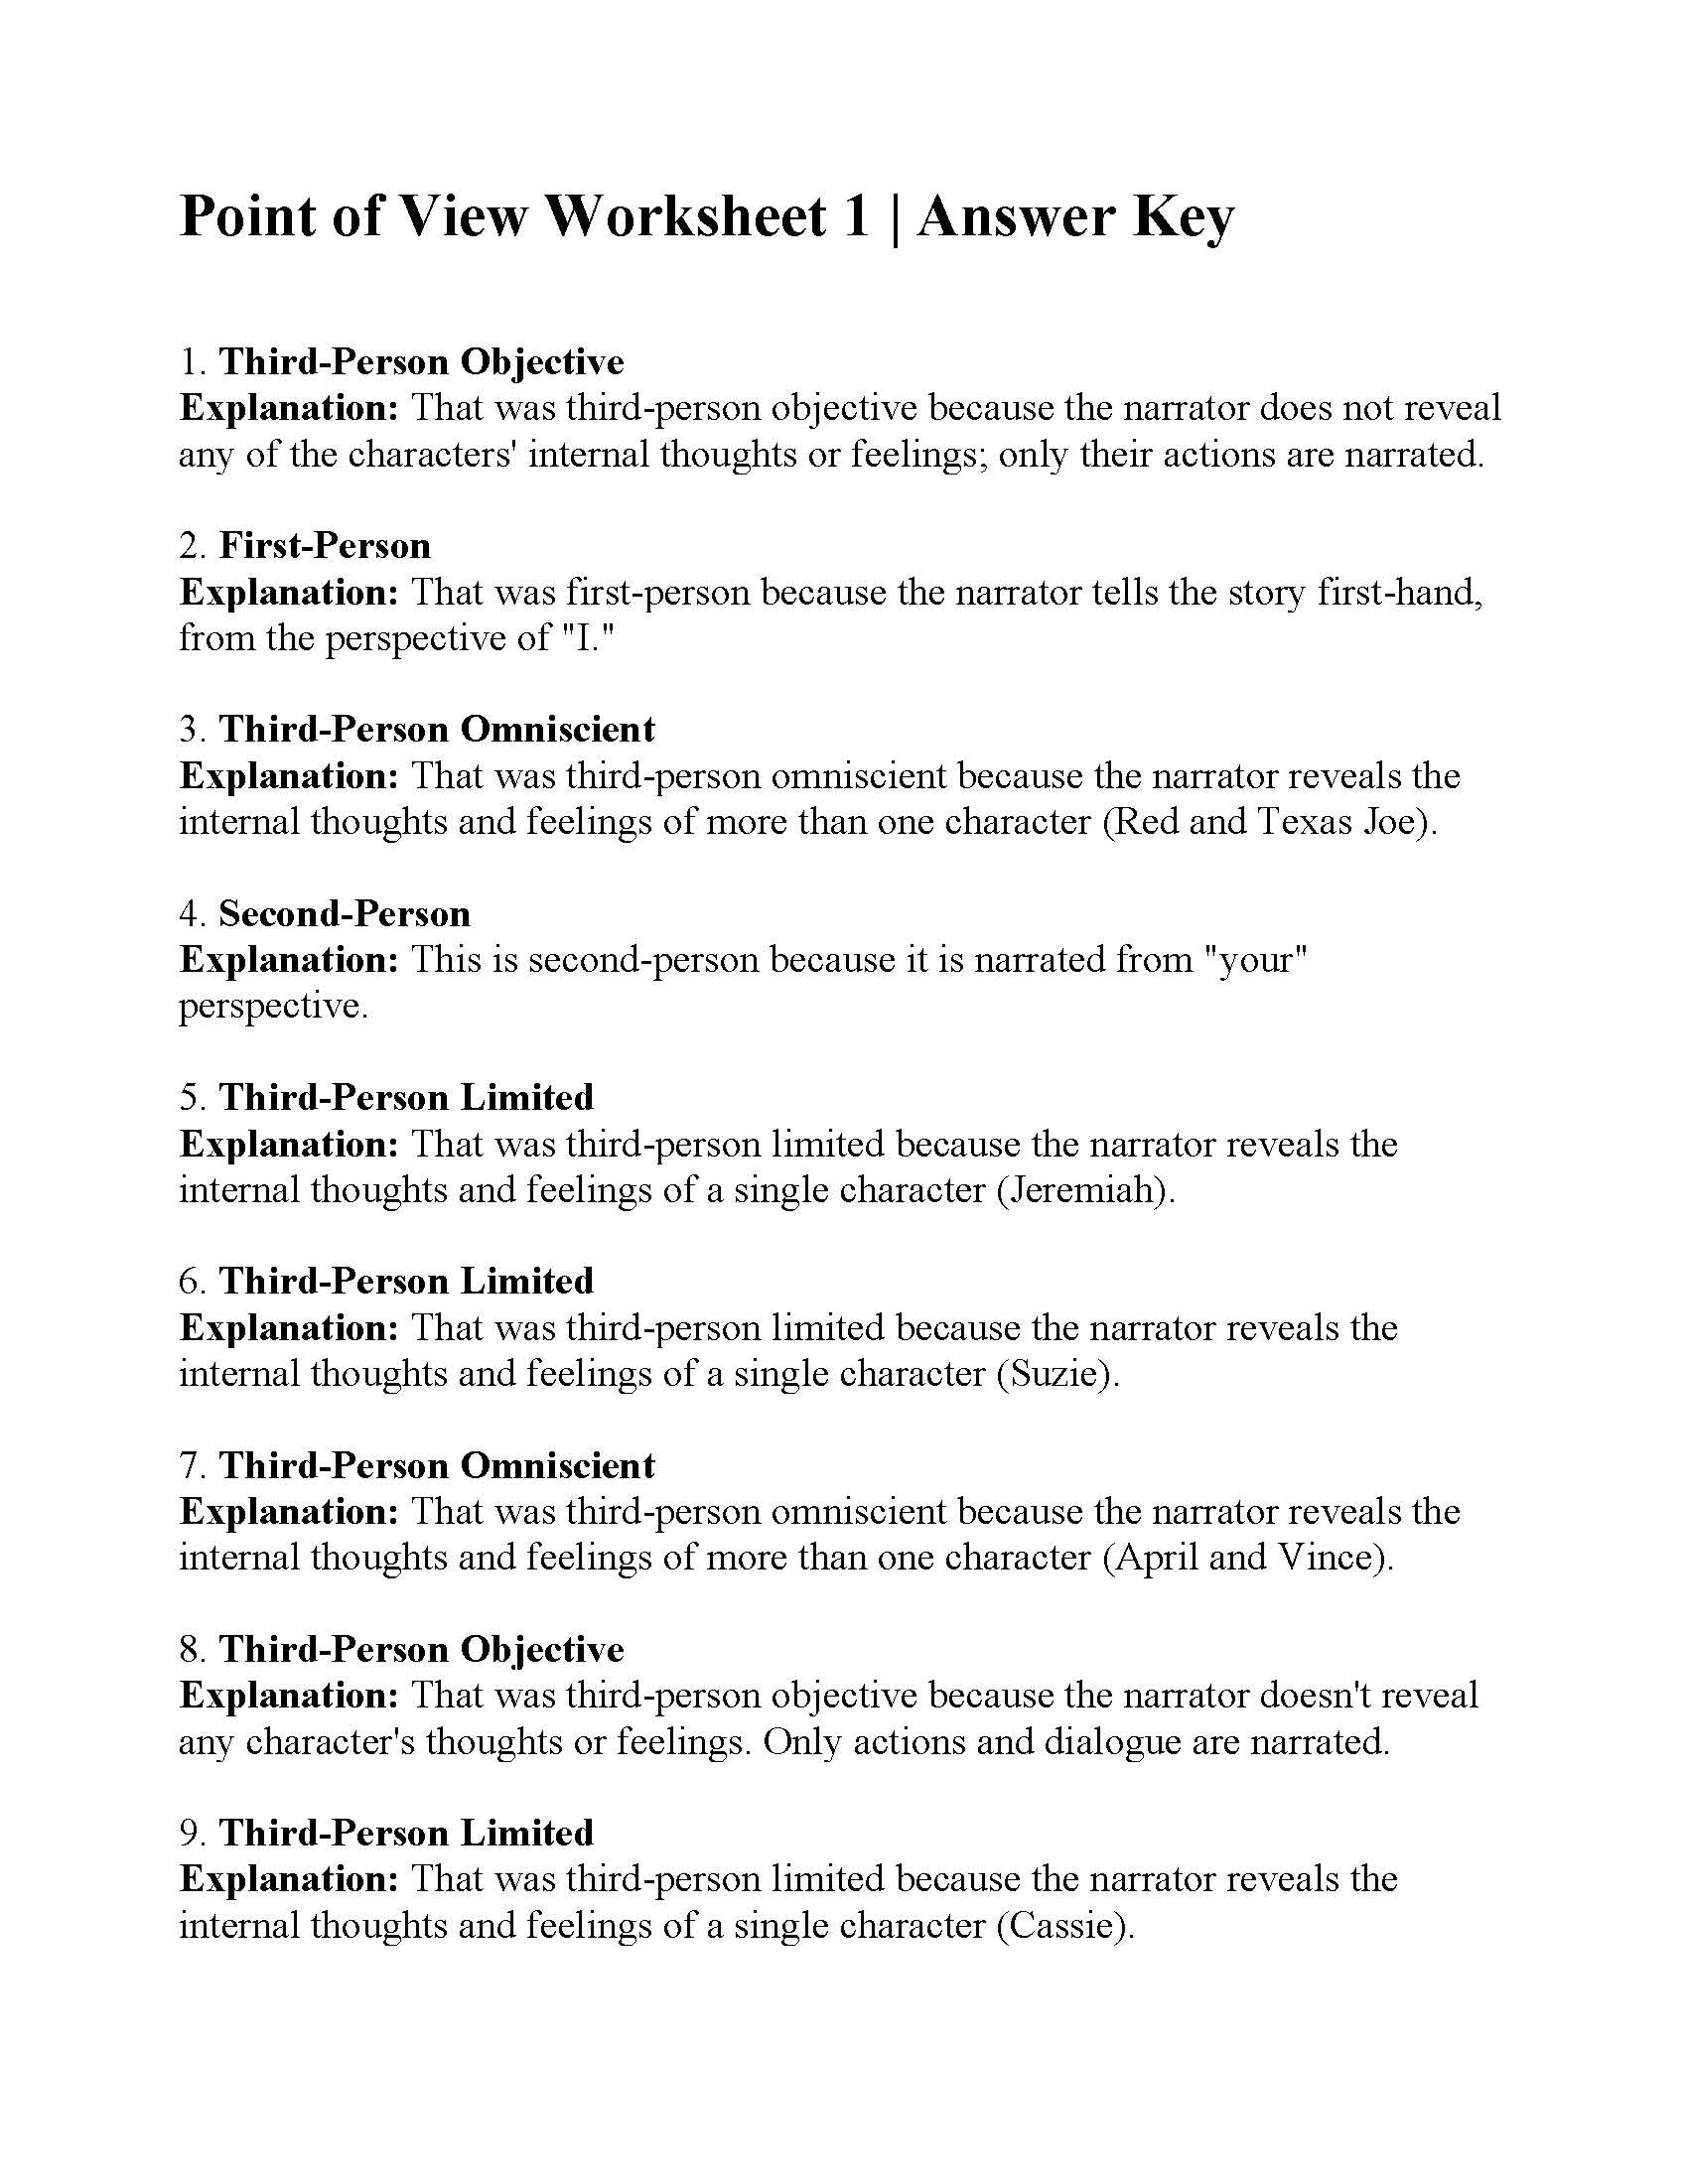 Dialogue Worksheets 3rd Grade Point Of View Worksheet 1